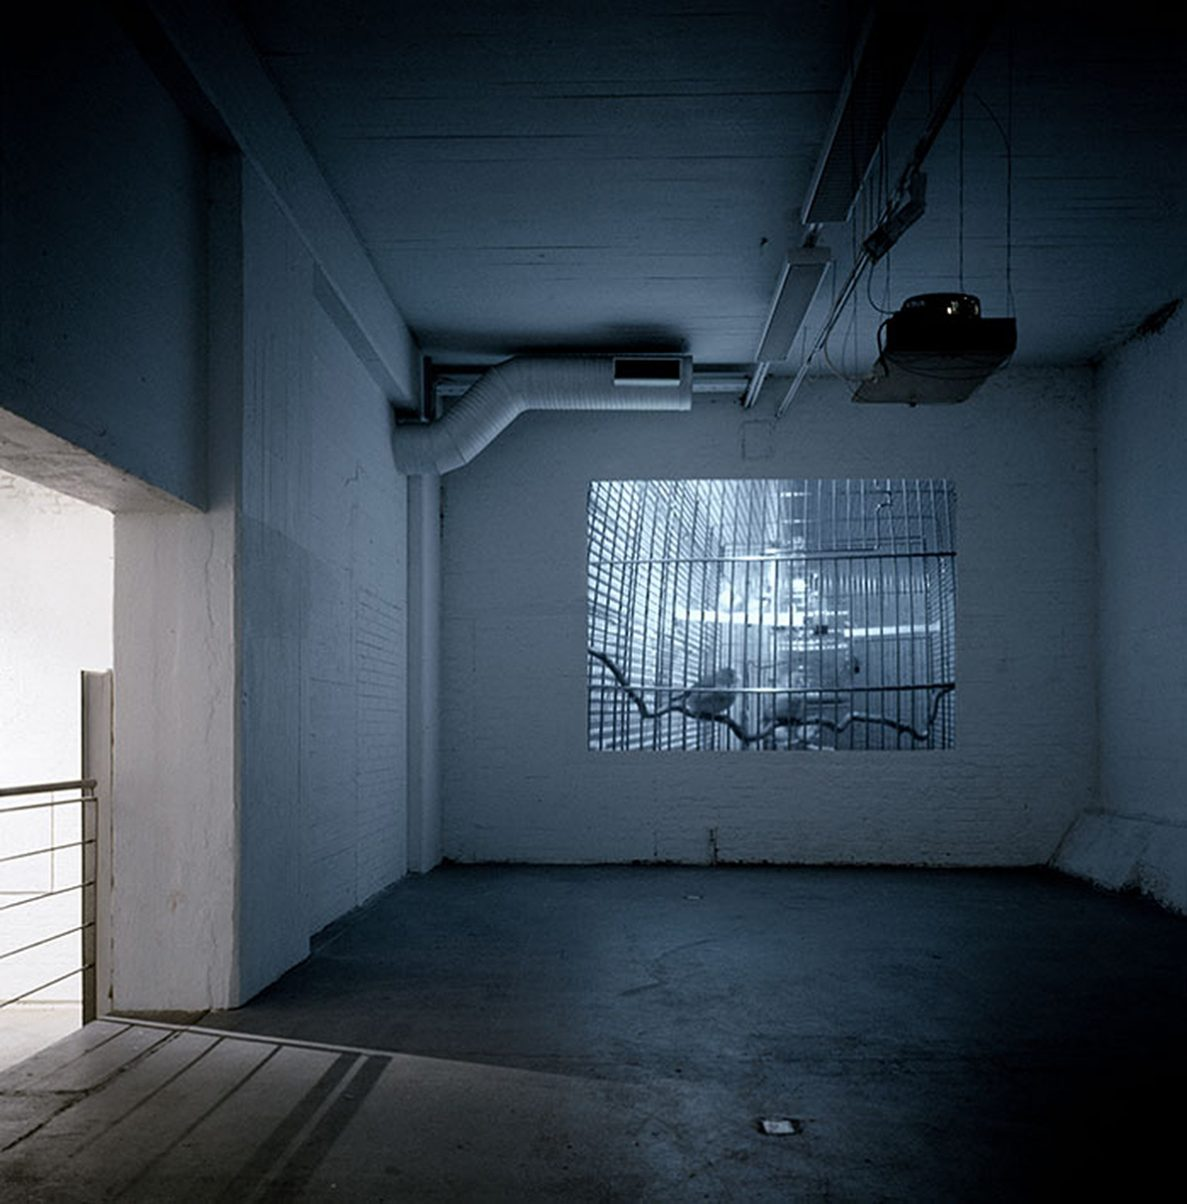 video projection with live feed from the surveillance camera, 200 x 300 cm